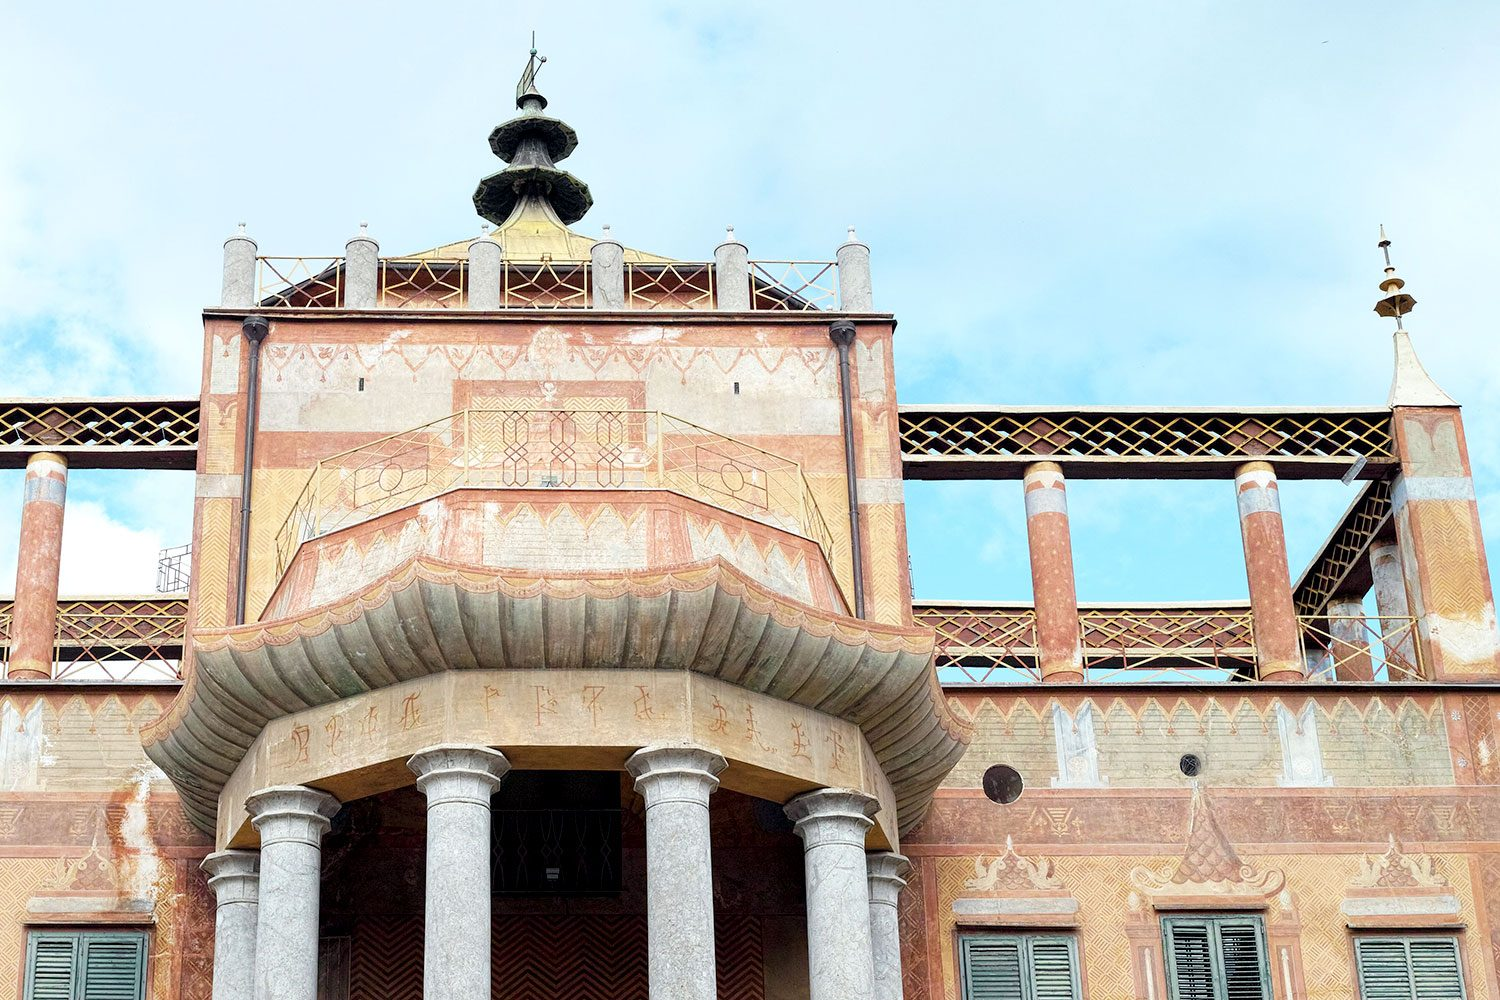 palazzina_cinese_palermo_thevoyageur06